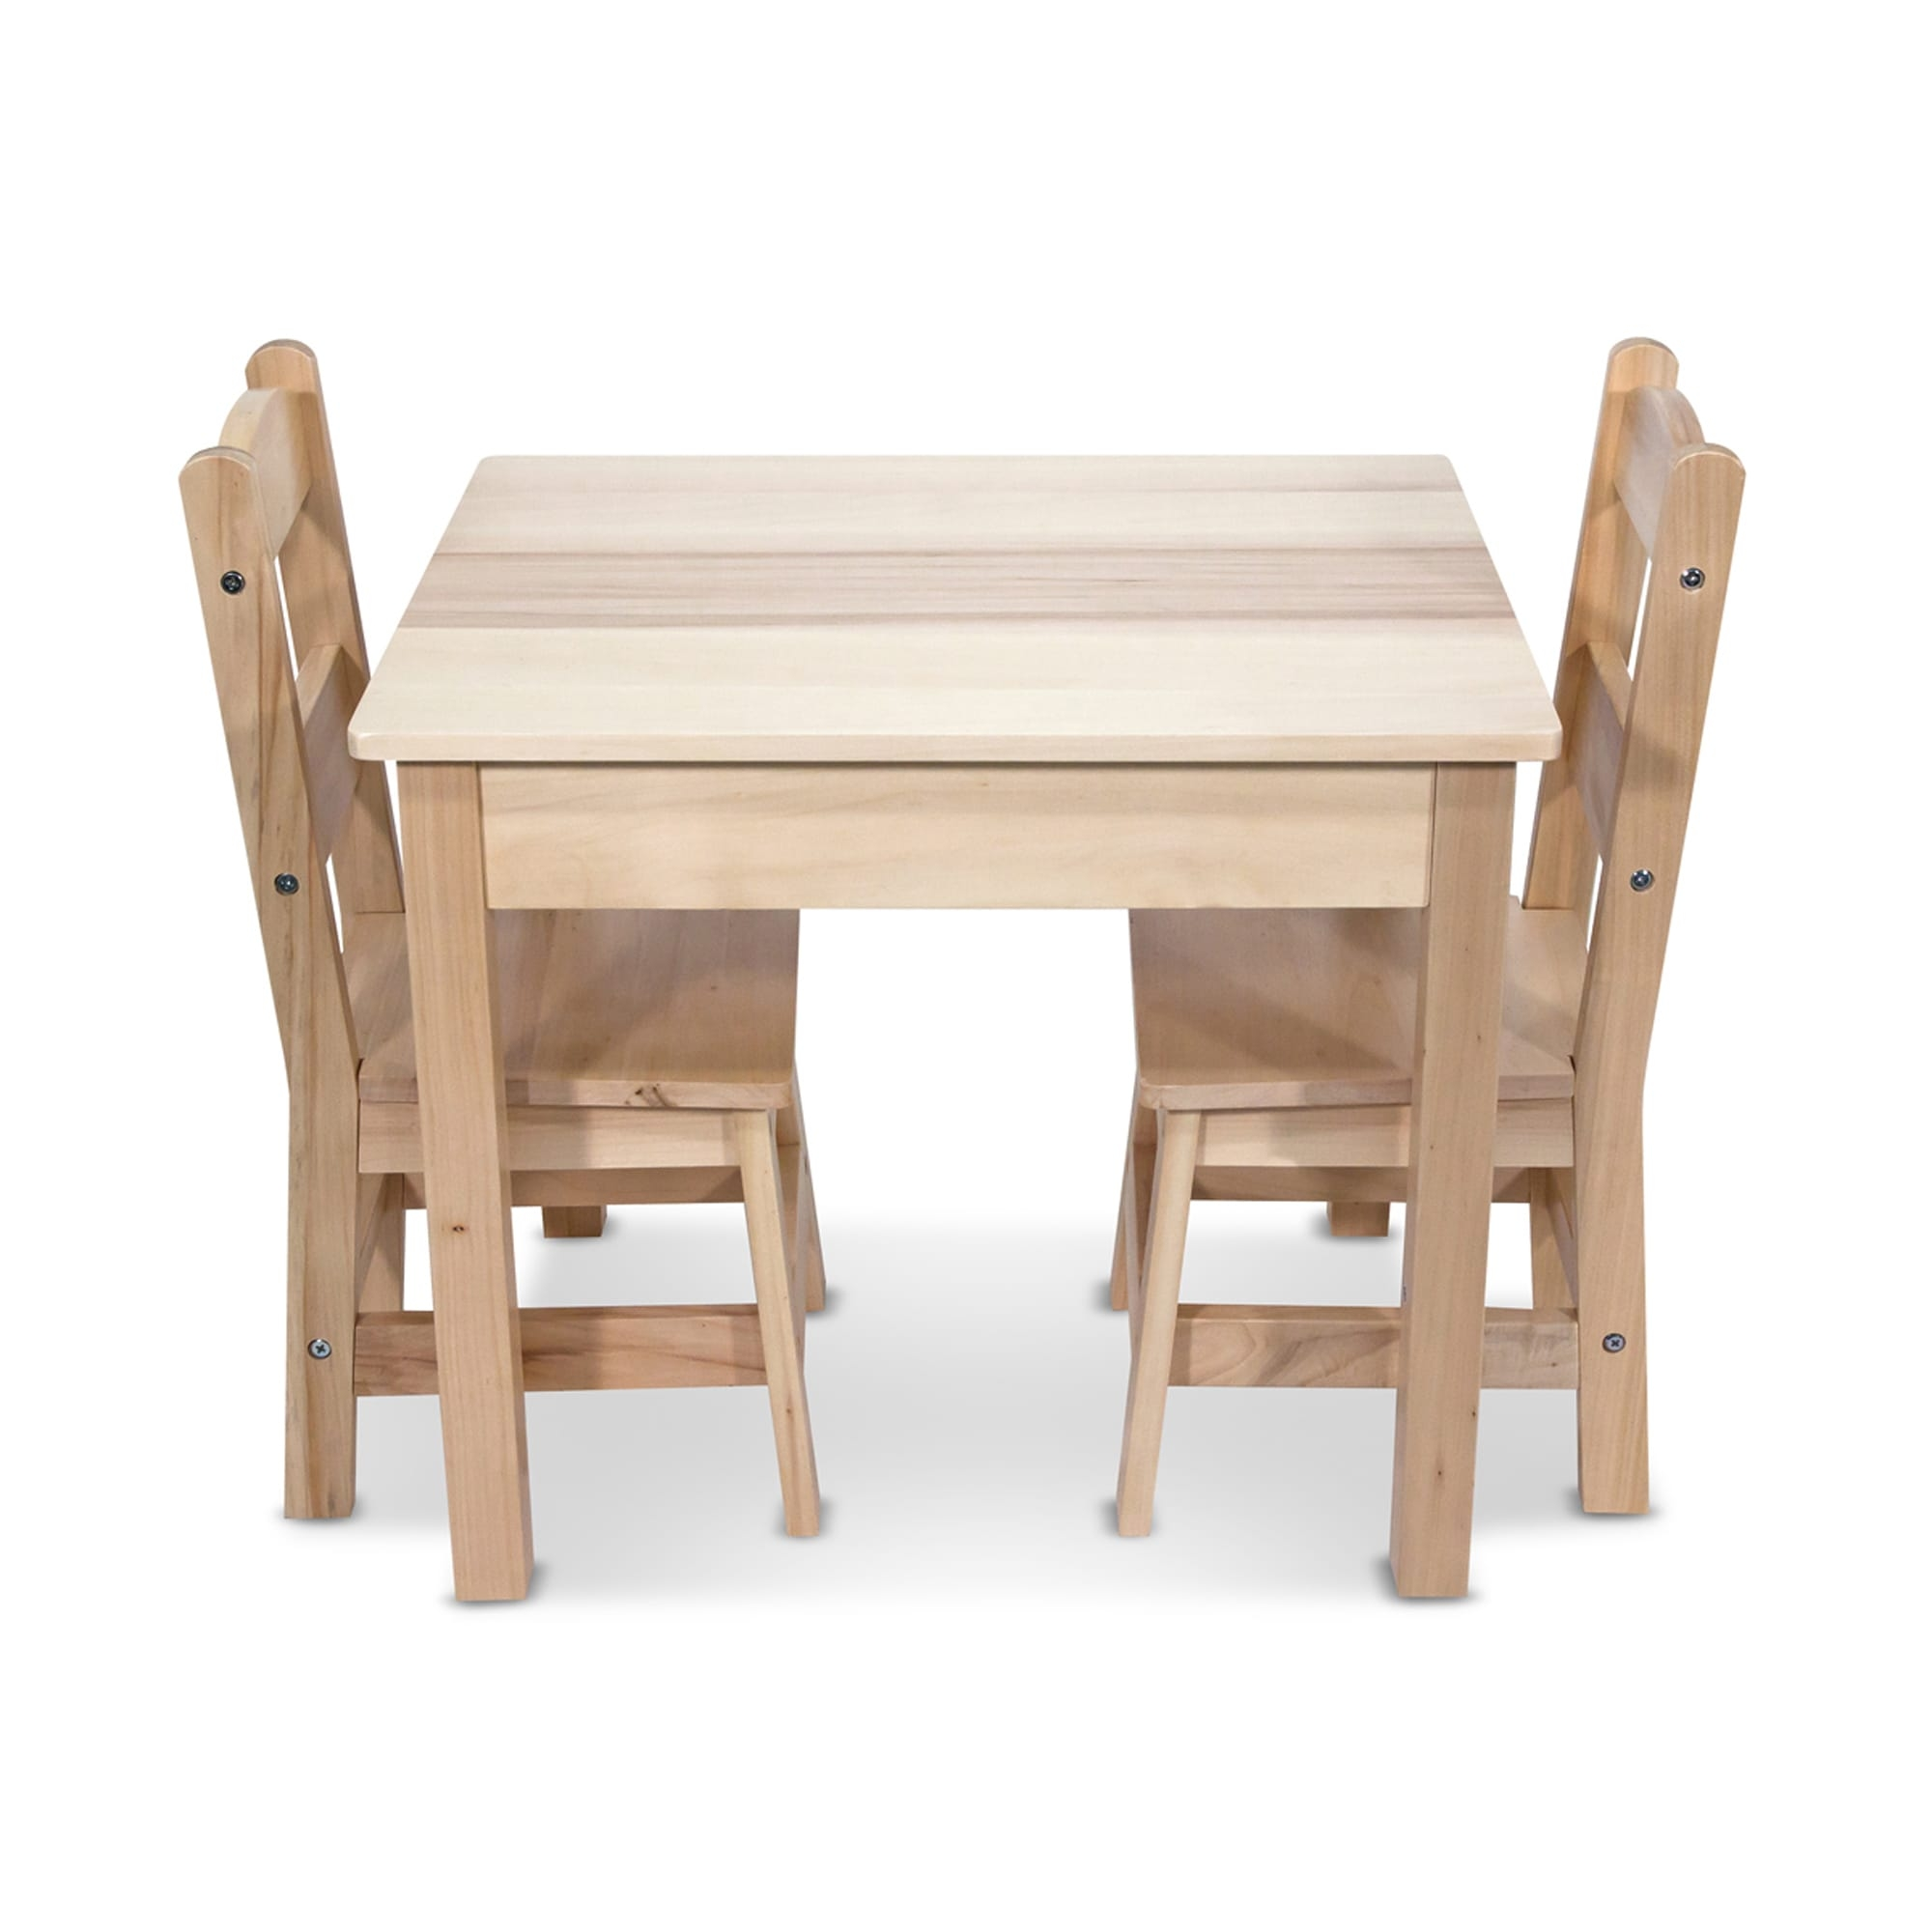 Kids table and chair set with storage  sc 1 st  Foter & Childrens Table And Chair Sets Wooden - Foter